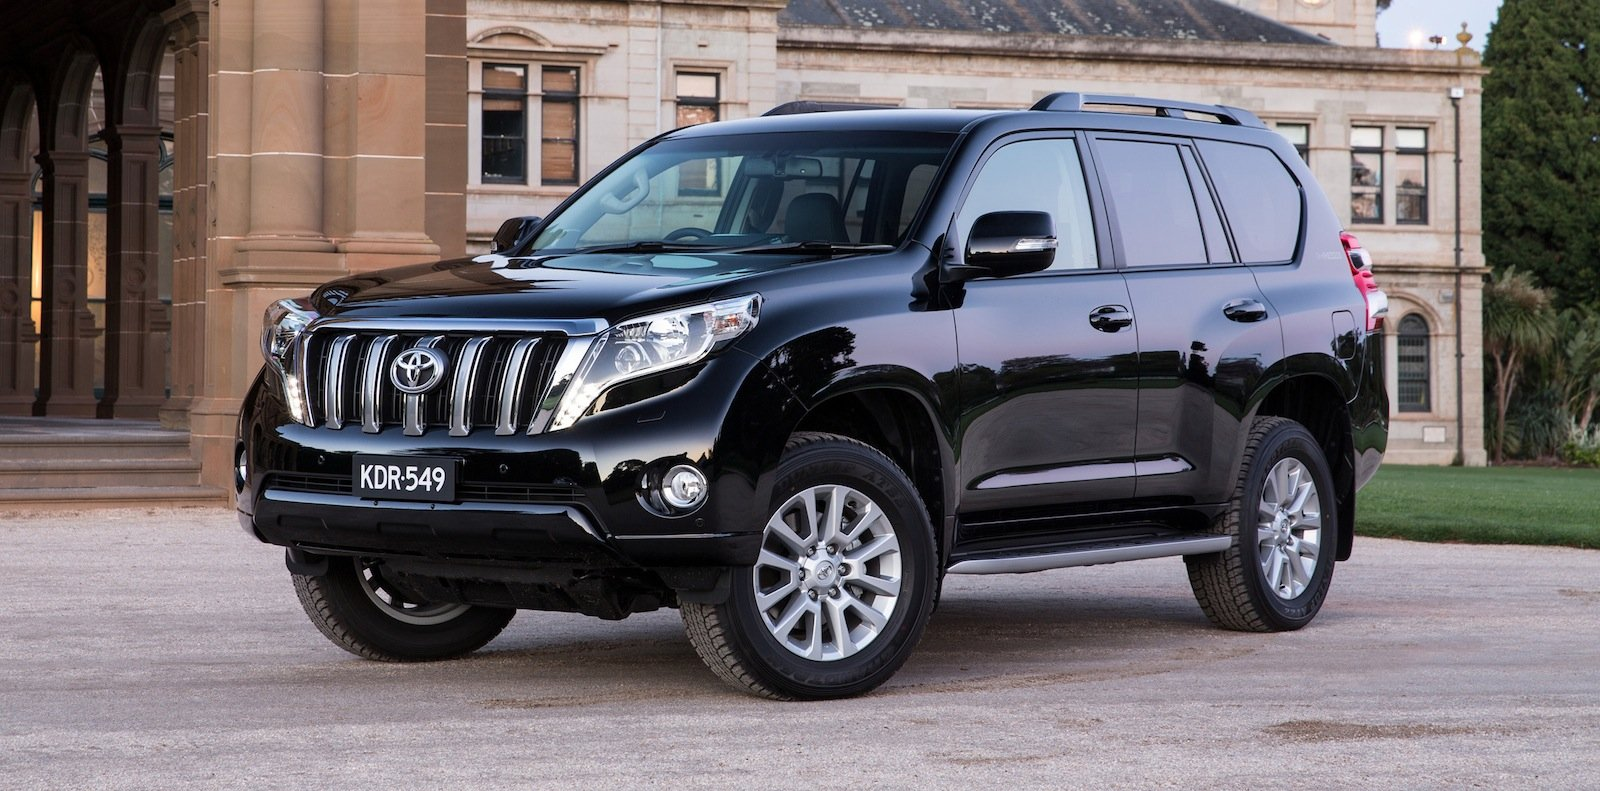 2014 toyota landcruiser prado pricing and specifications photos 1 of 18. Black Bedroom Furniture Sets. Home Design Ideas